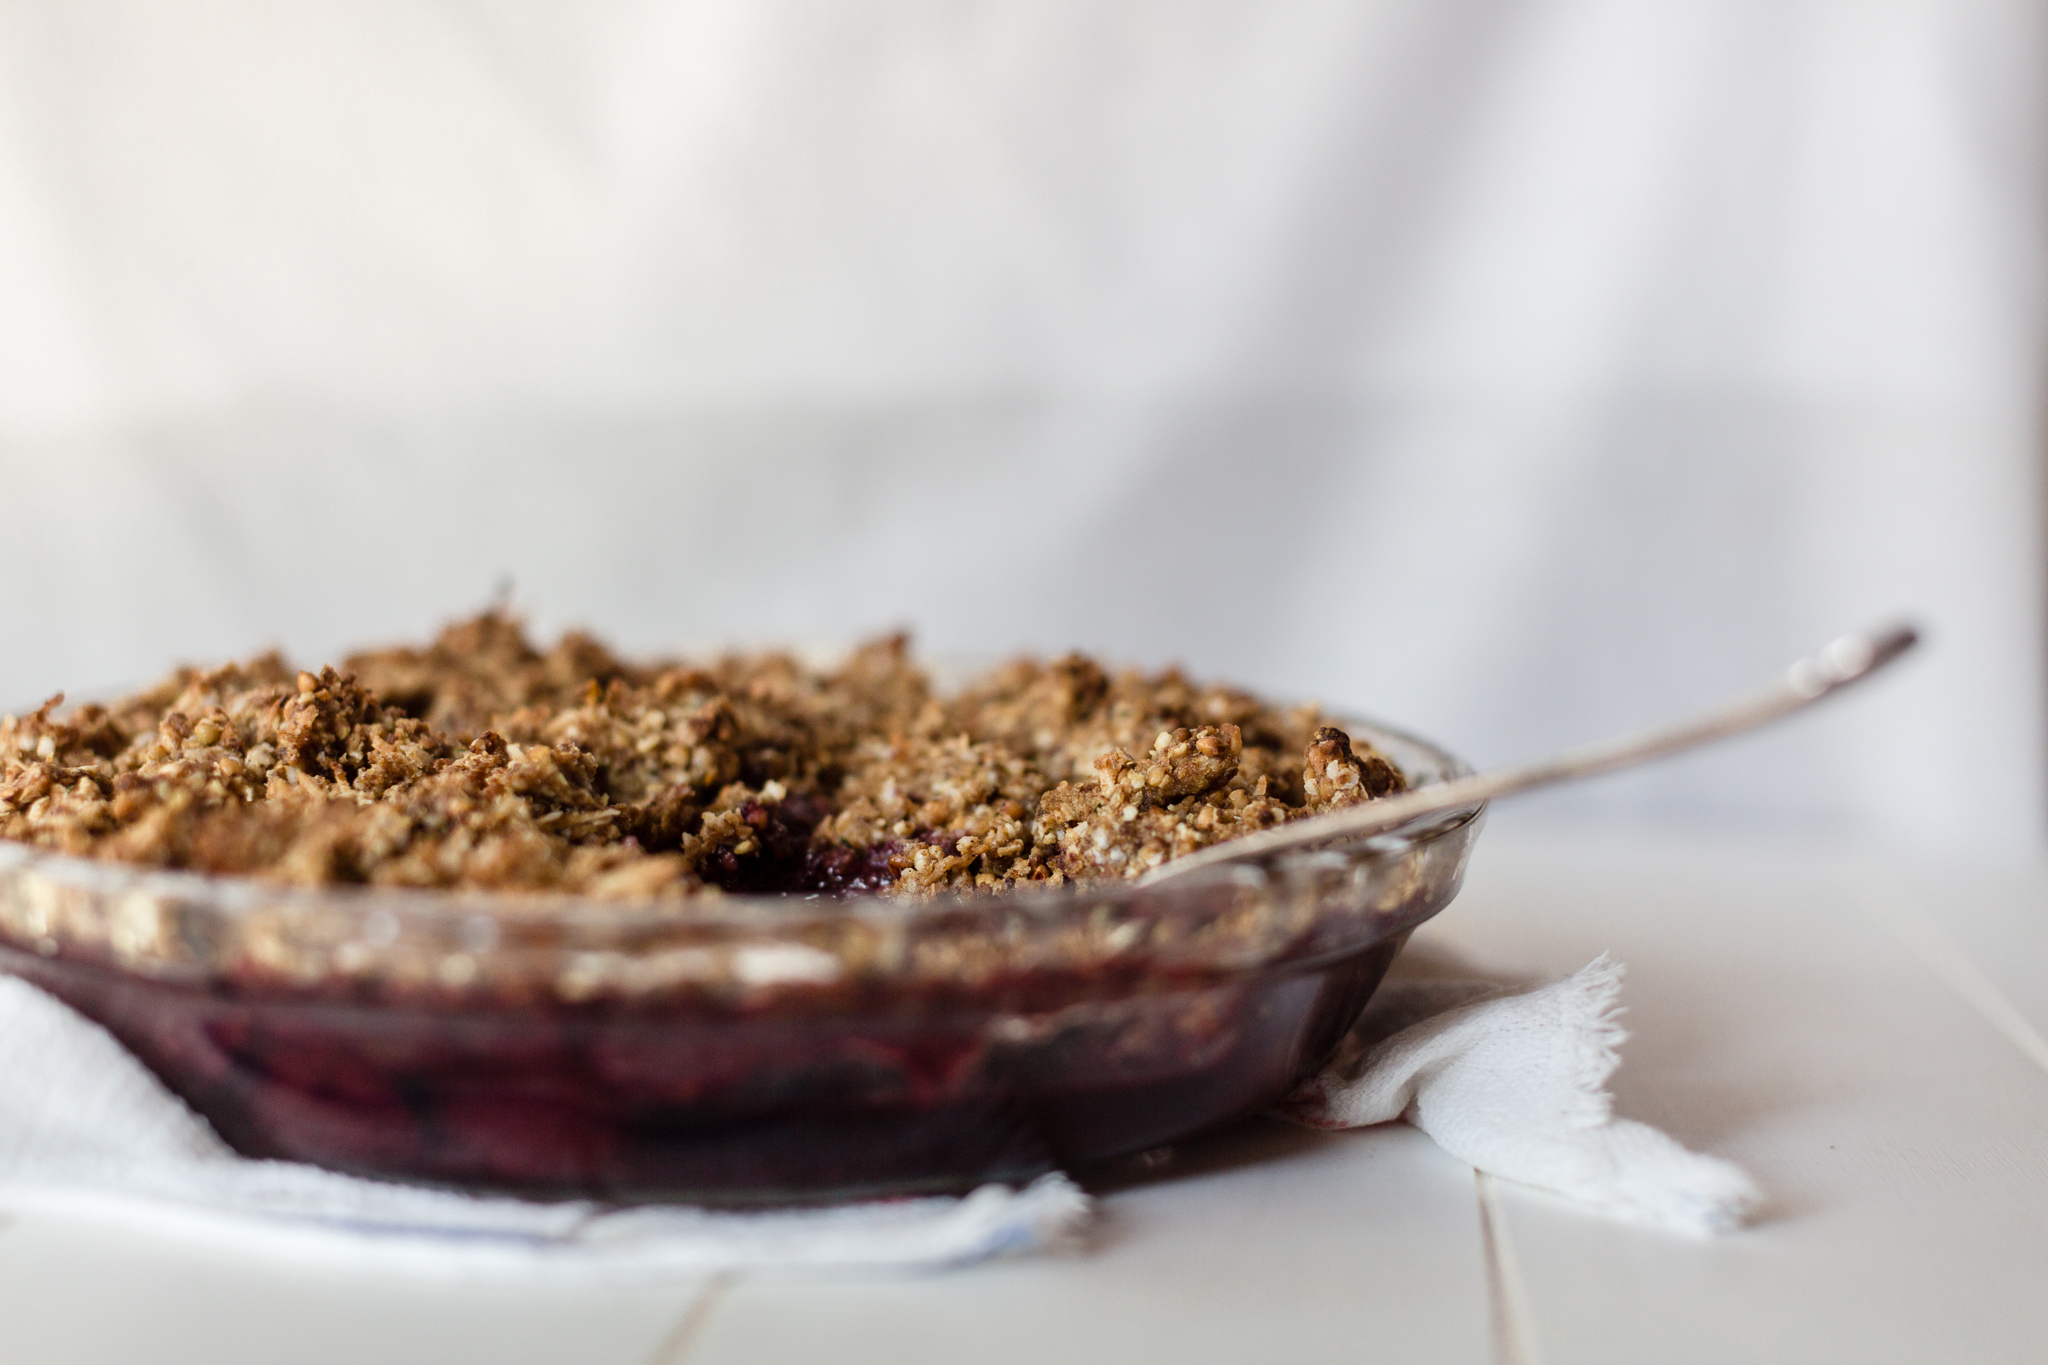 The-Natural-Food-Emporium-Seriously-Great-Plum-Crumble-Recipe